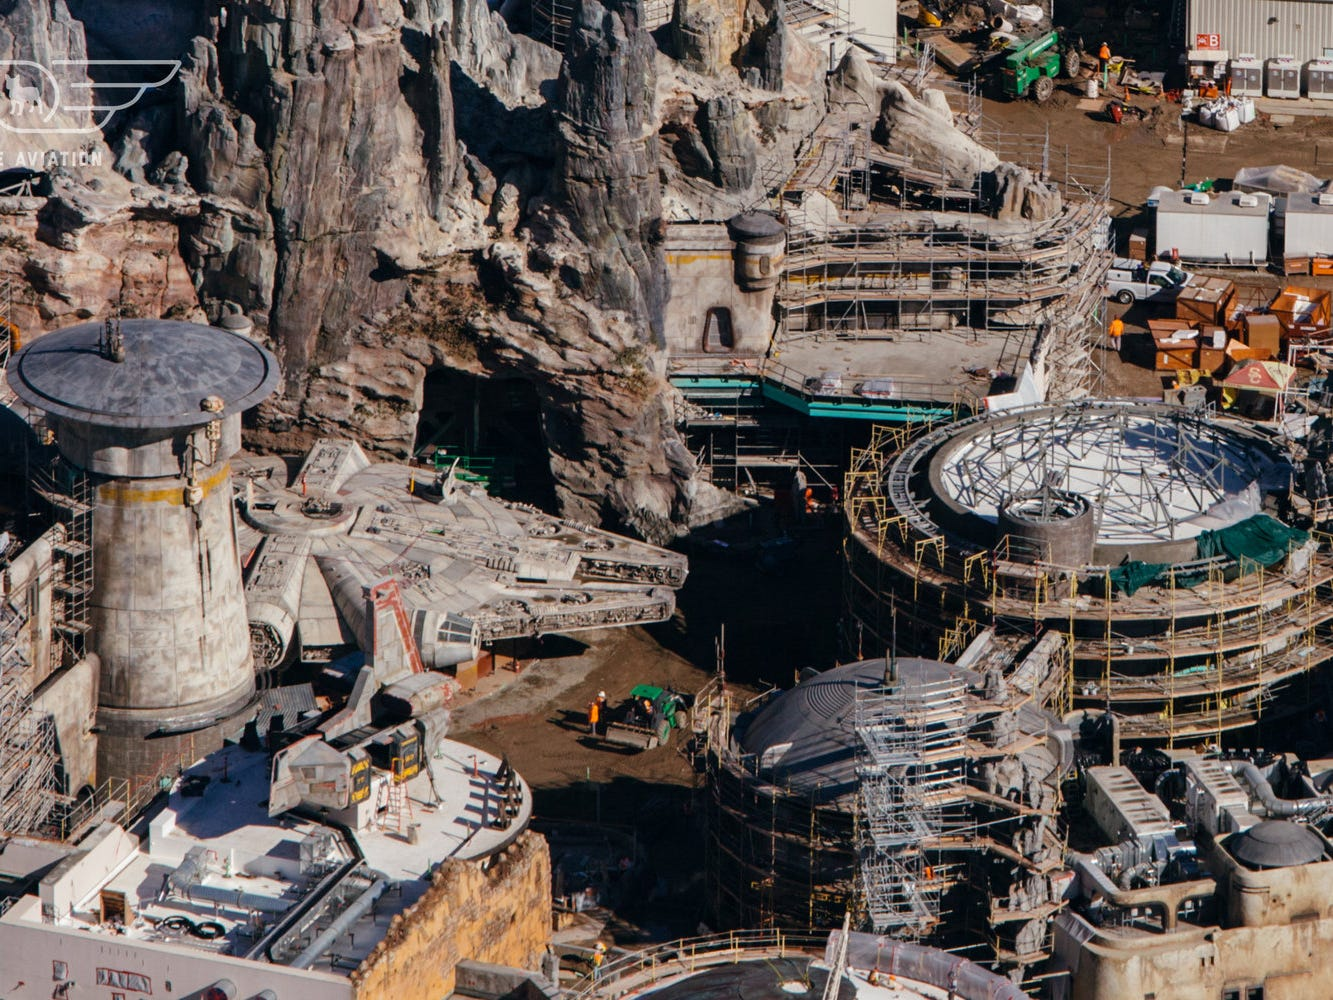 The Millennium Falcon appears ready for launch as seen in this Dec. 7, 2018 aerial photo of Star Wars: Galaxy's Edge.